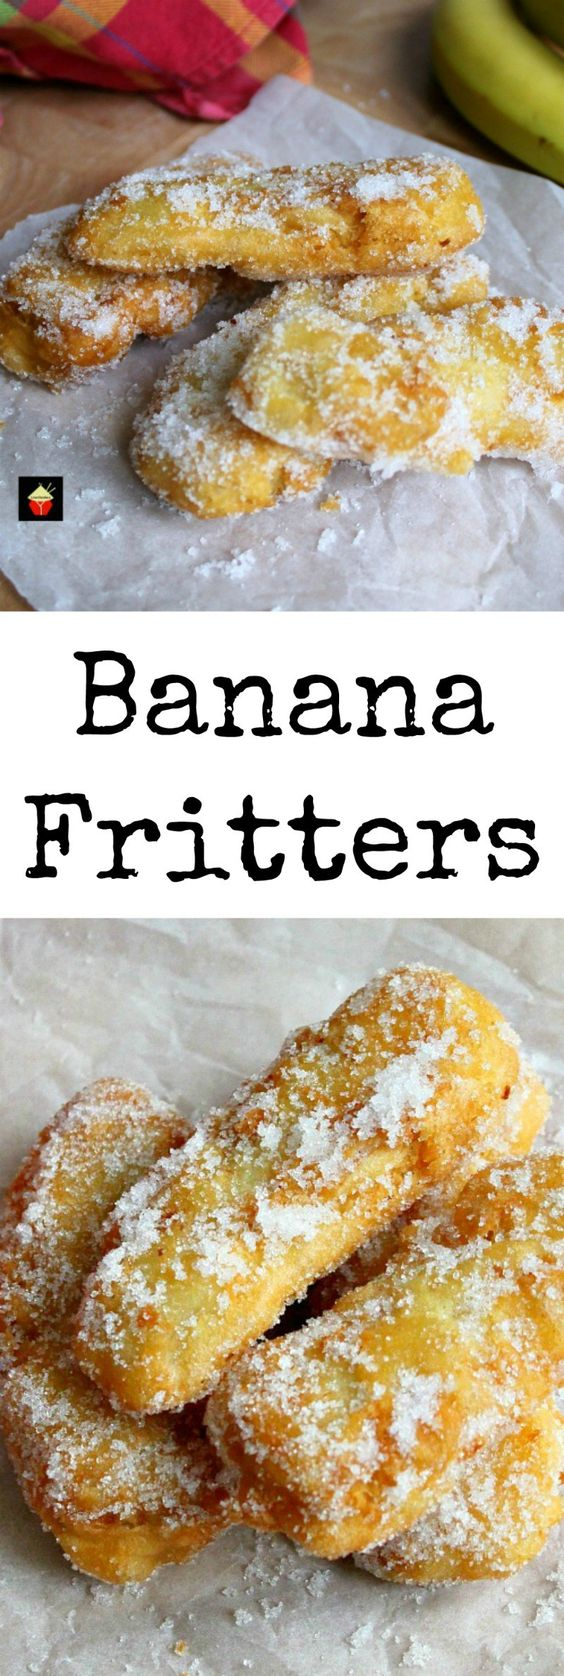 how to make banana fritters in oven